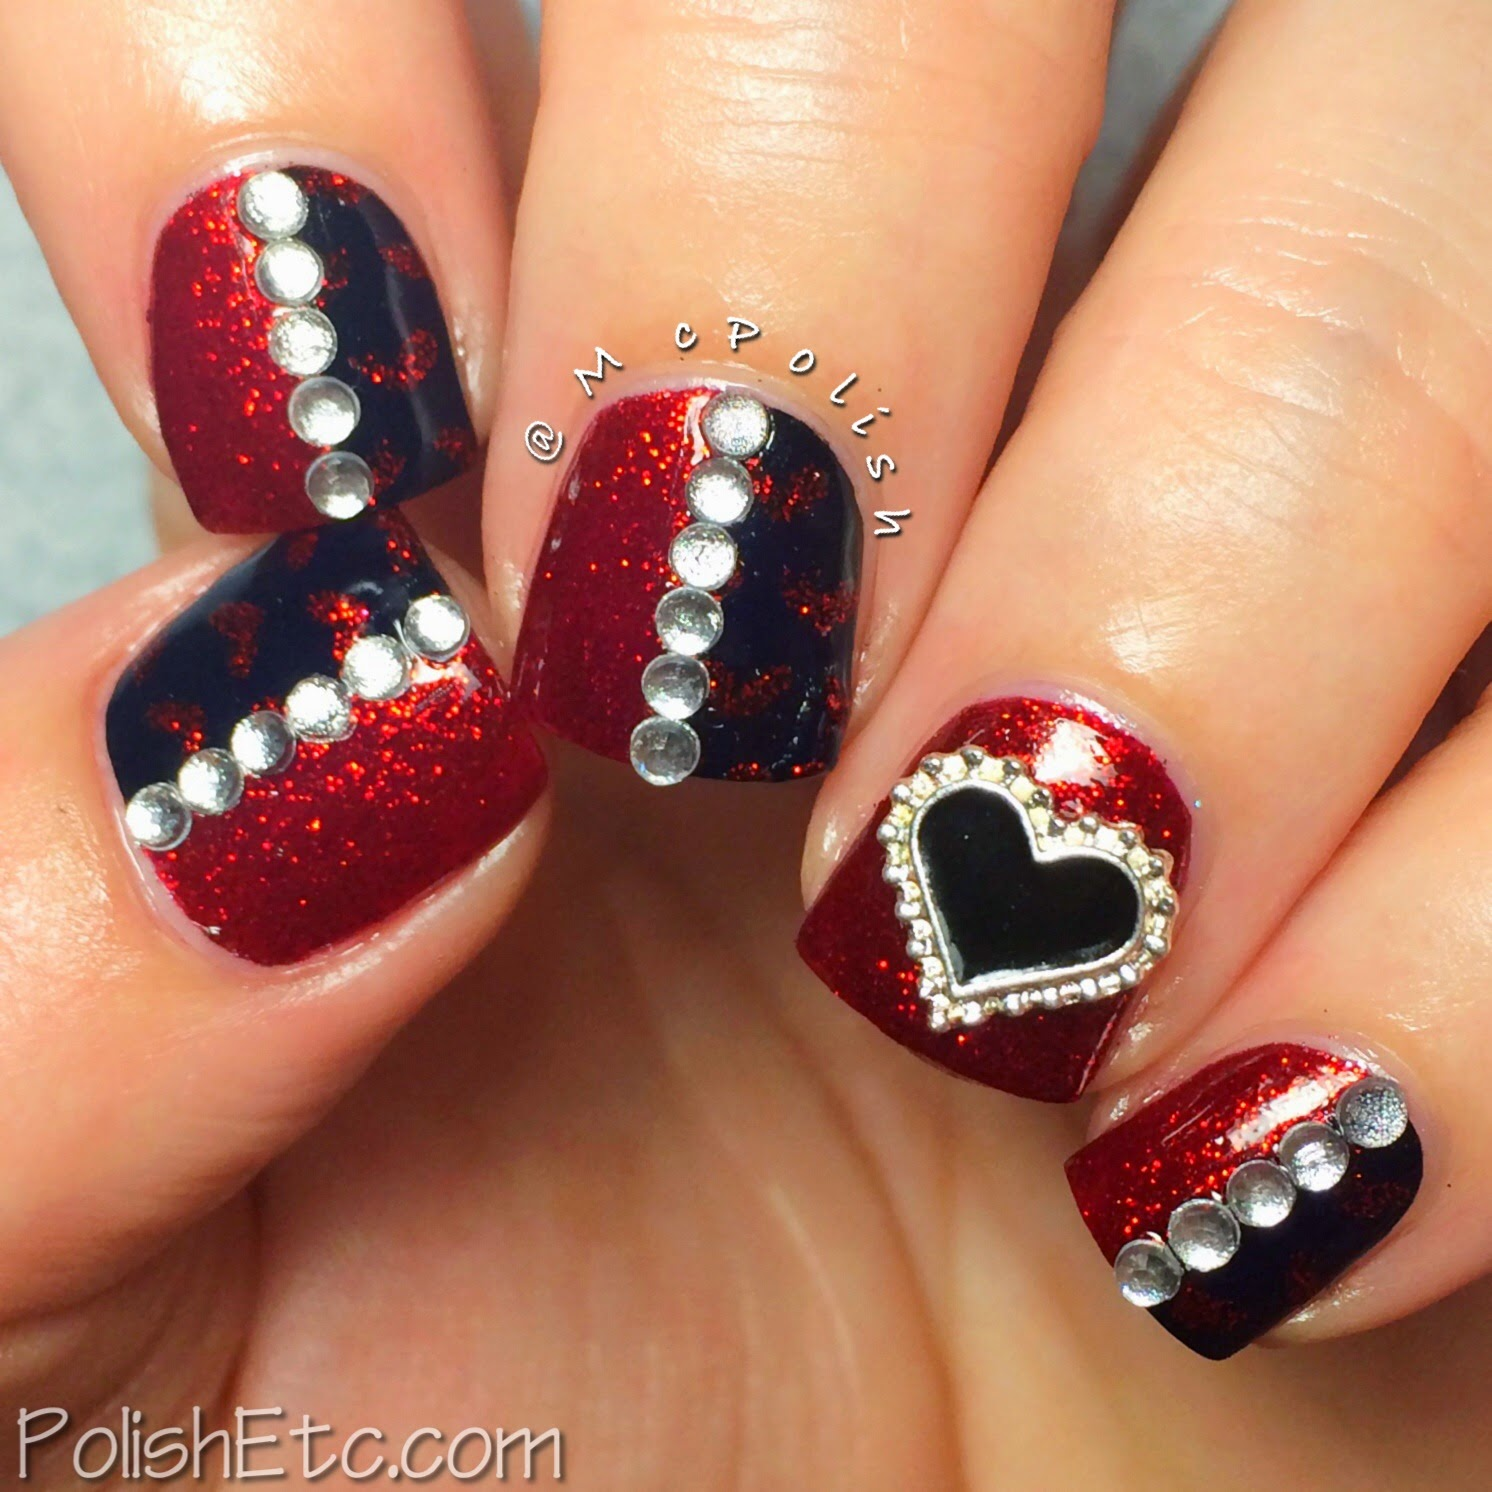 #31dc2014 - 31 Day Nail Art Challenge 2014 by McPolish - RED